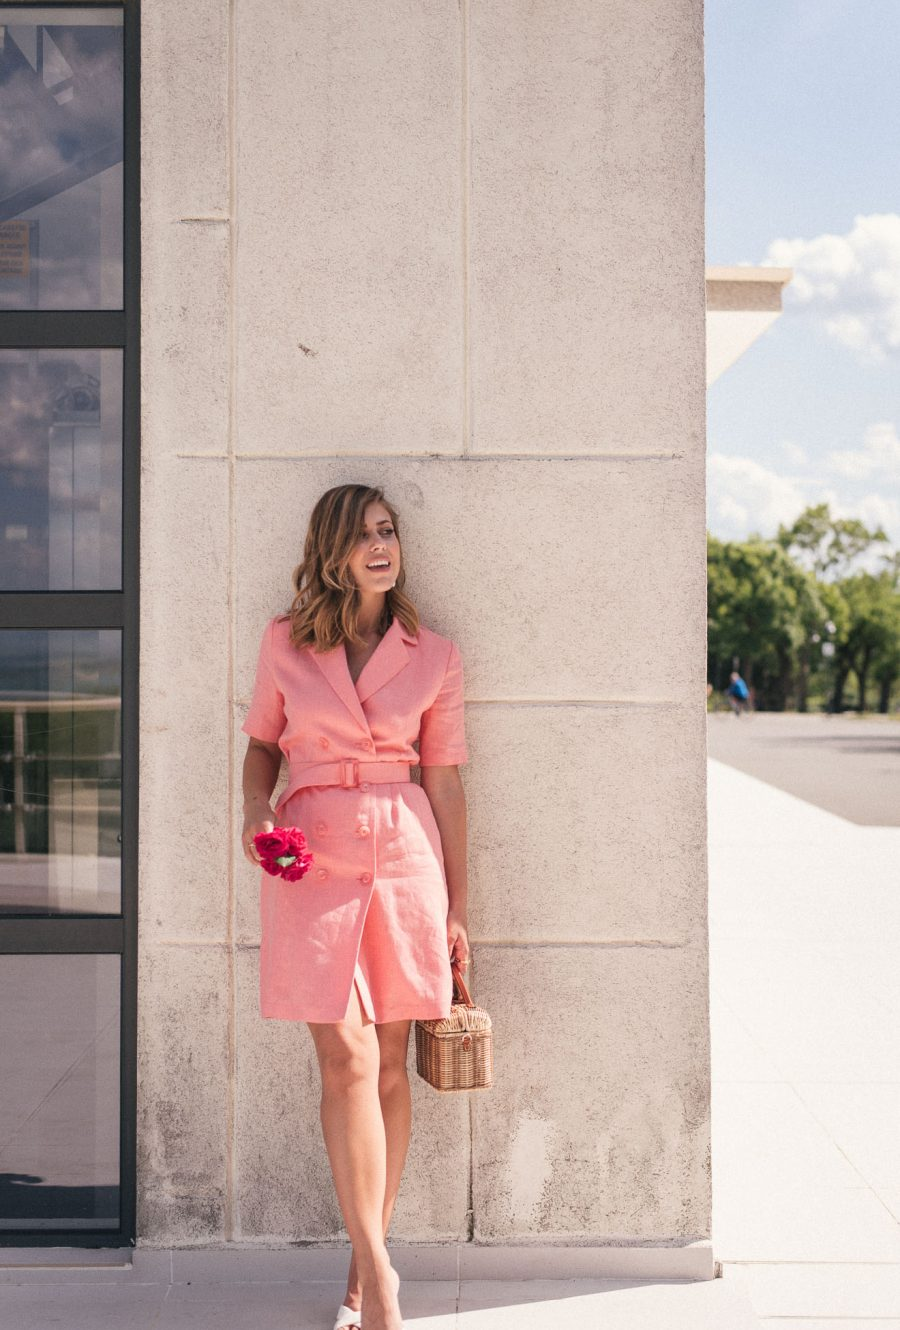 Rose linen dress from Denina Martin